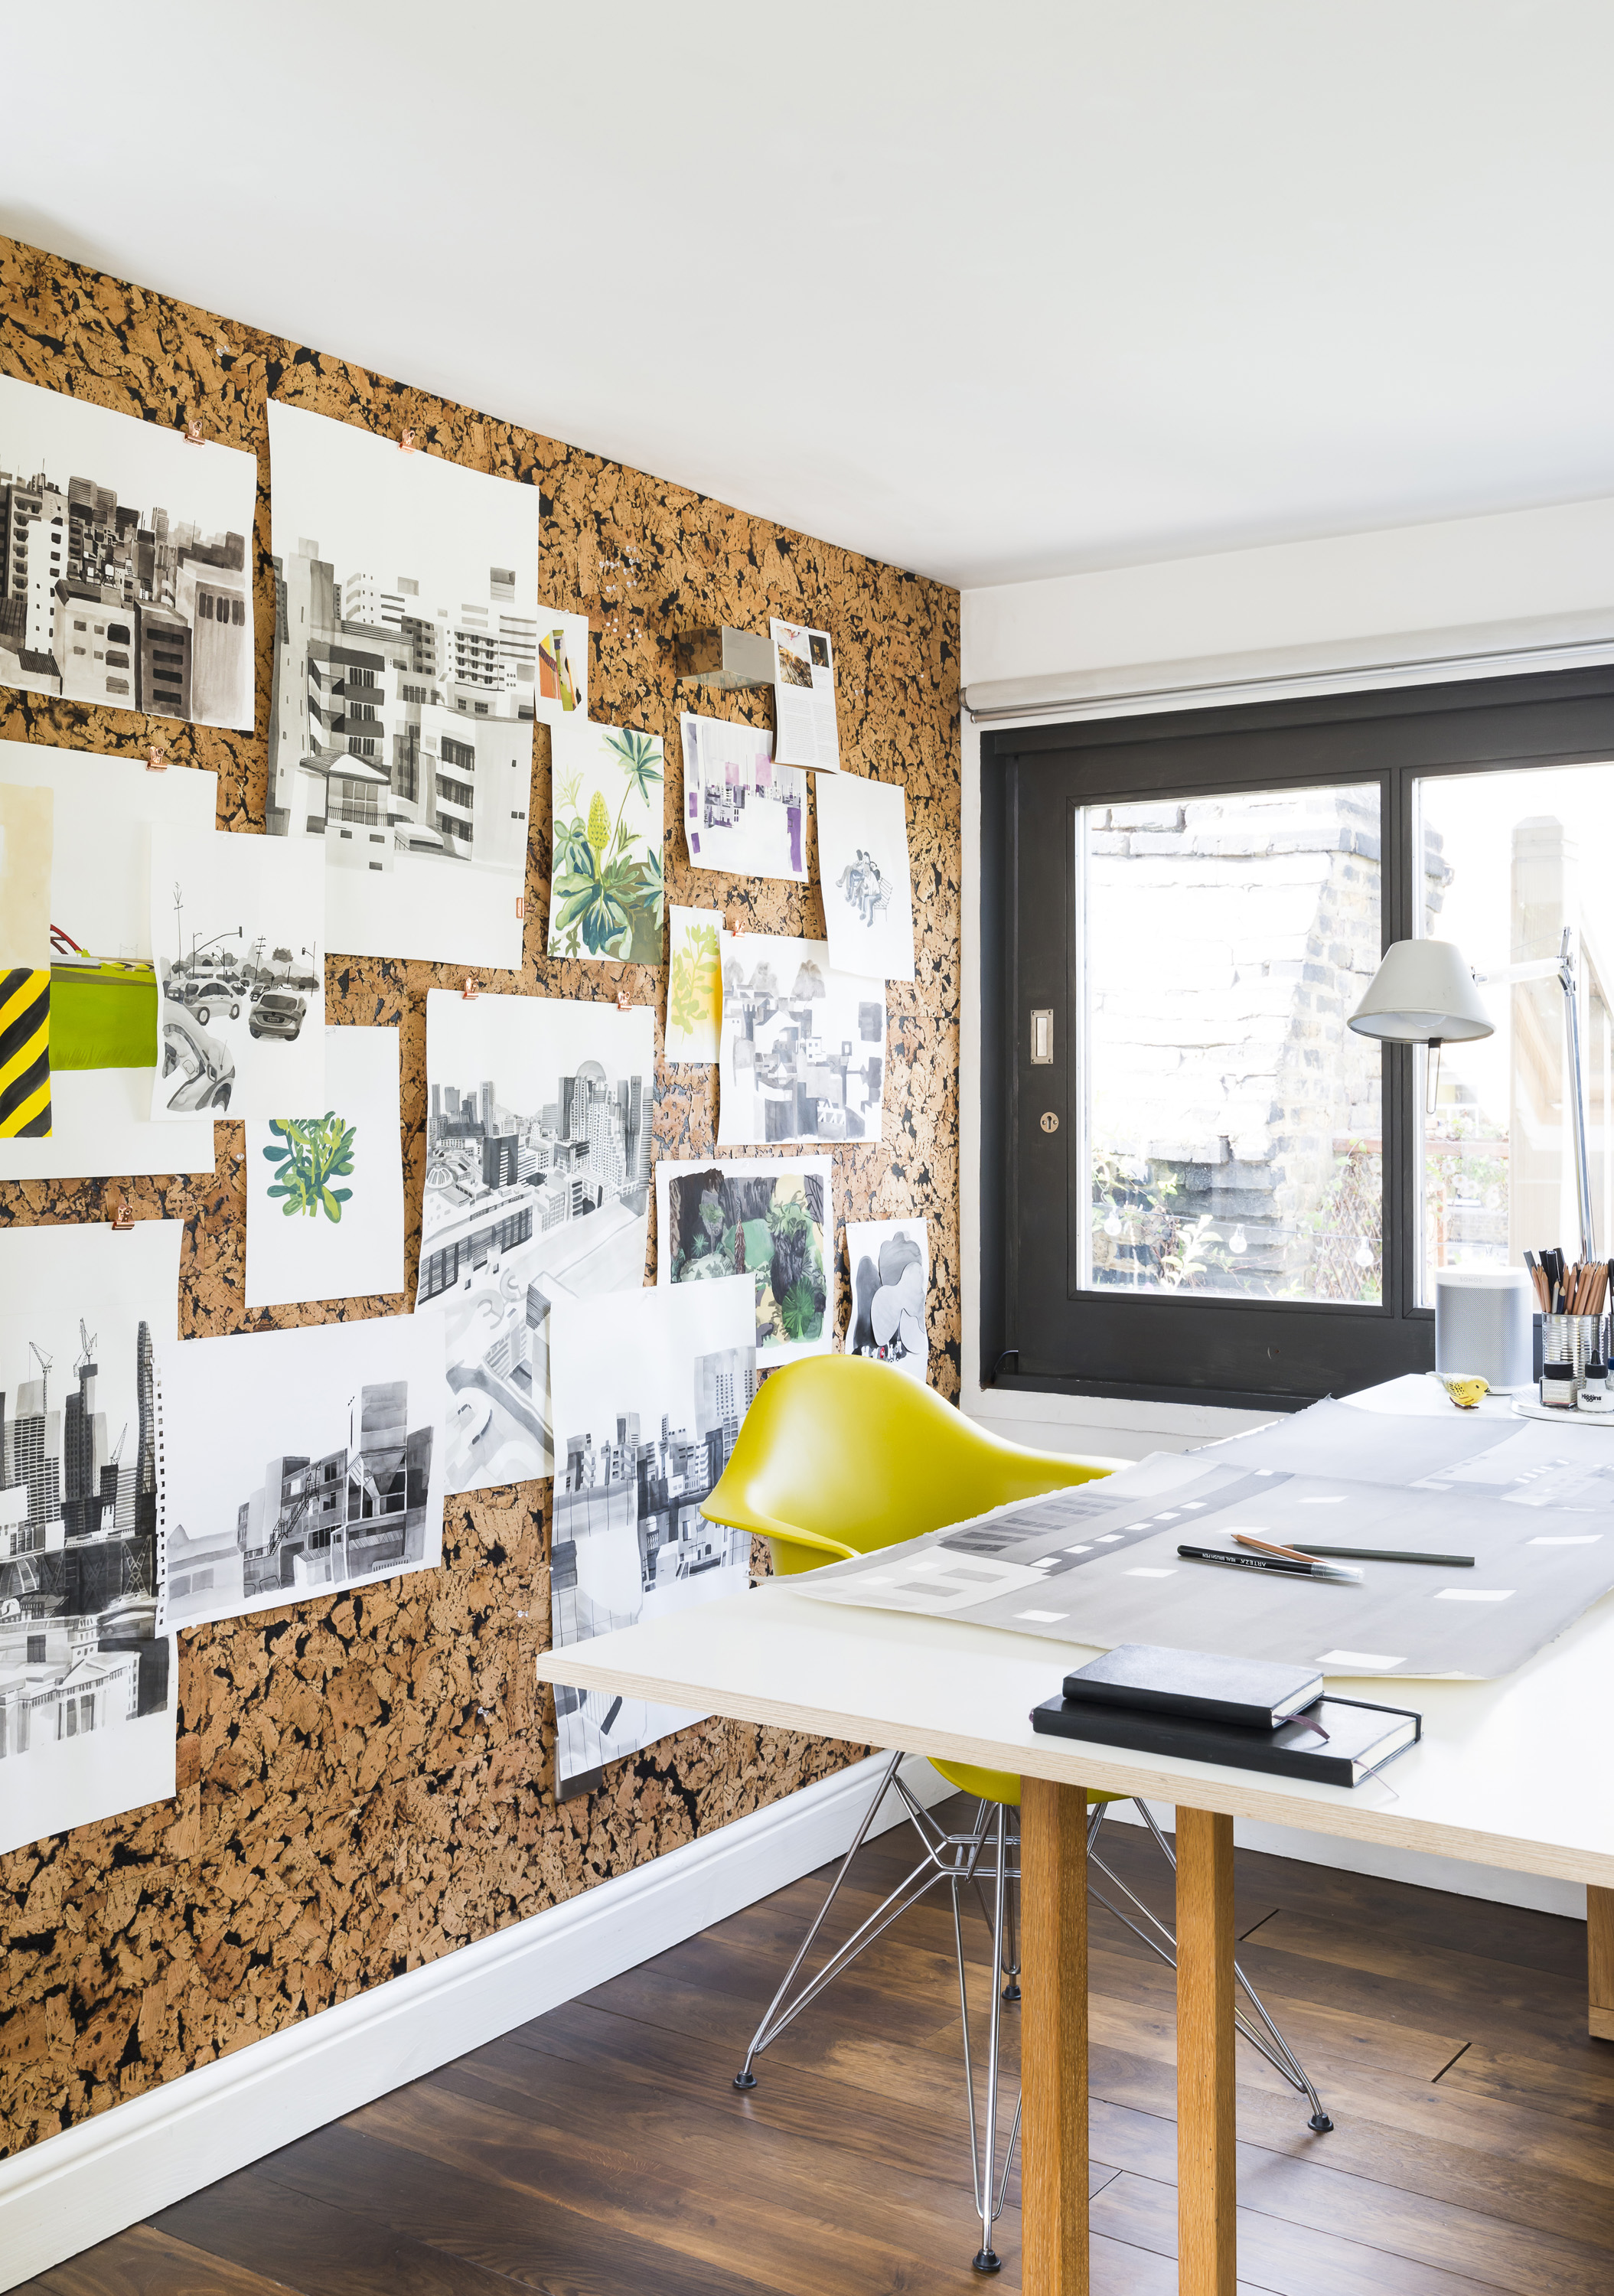 12 home office ideas – stylish spaces to inspire your WFH set up